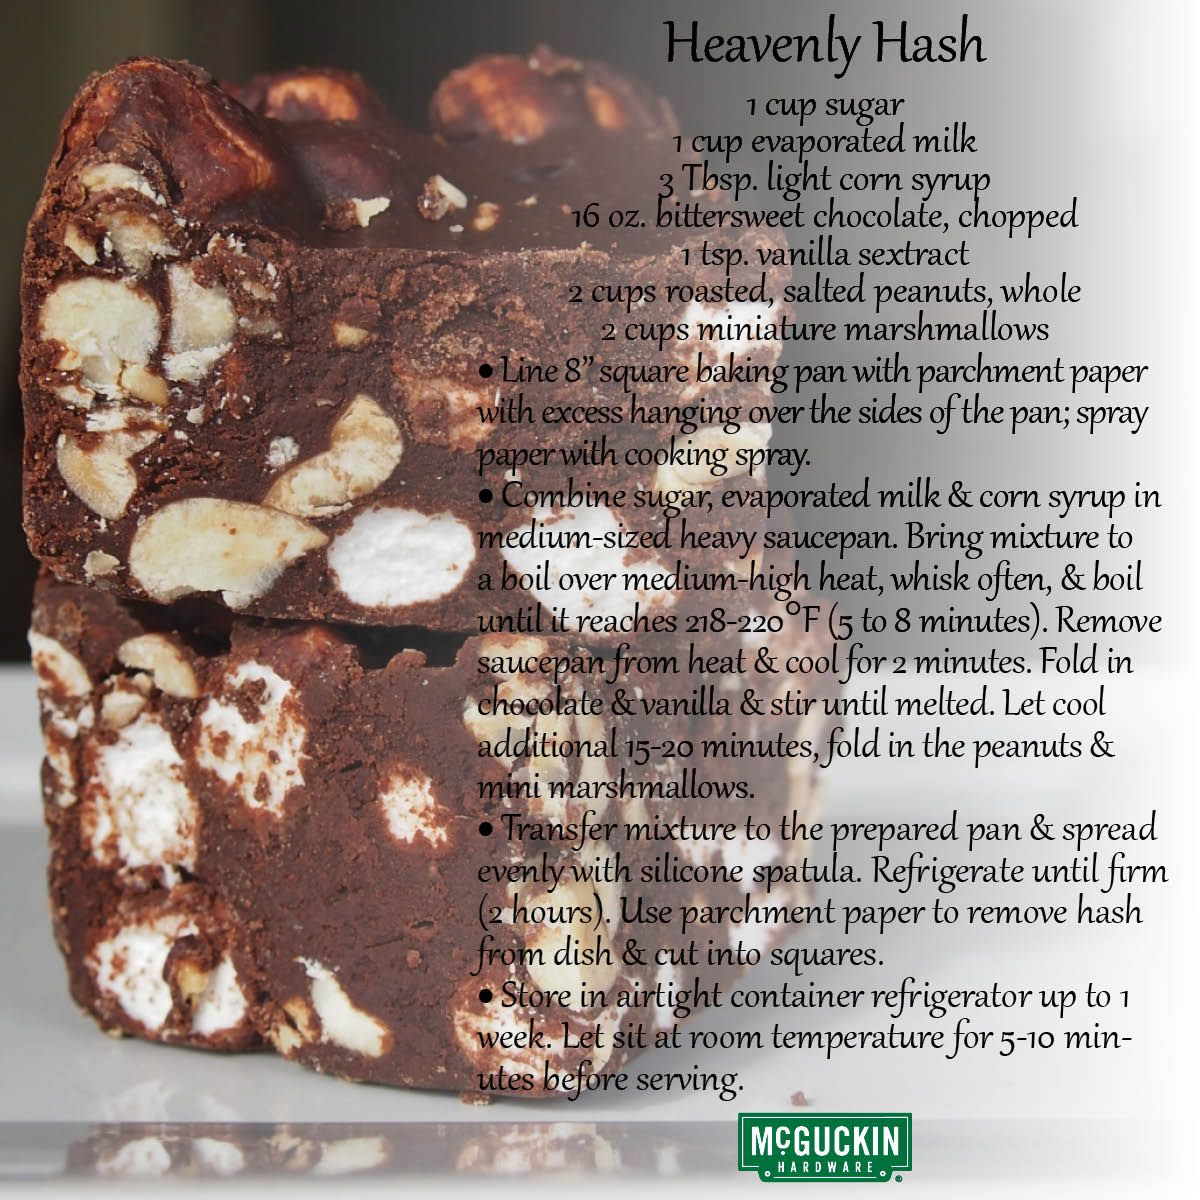 February 2nd is National Heavenly Hash Day! www.mcguckiin